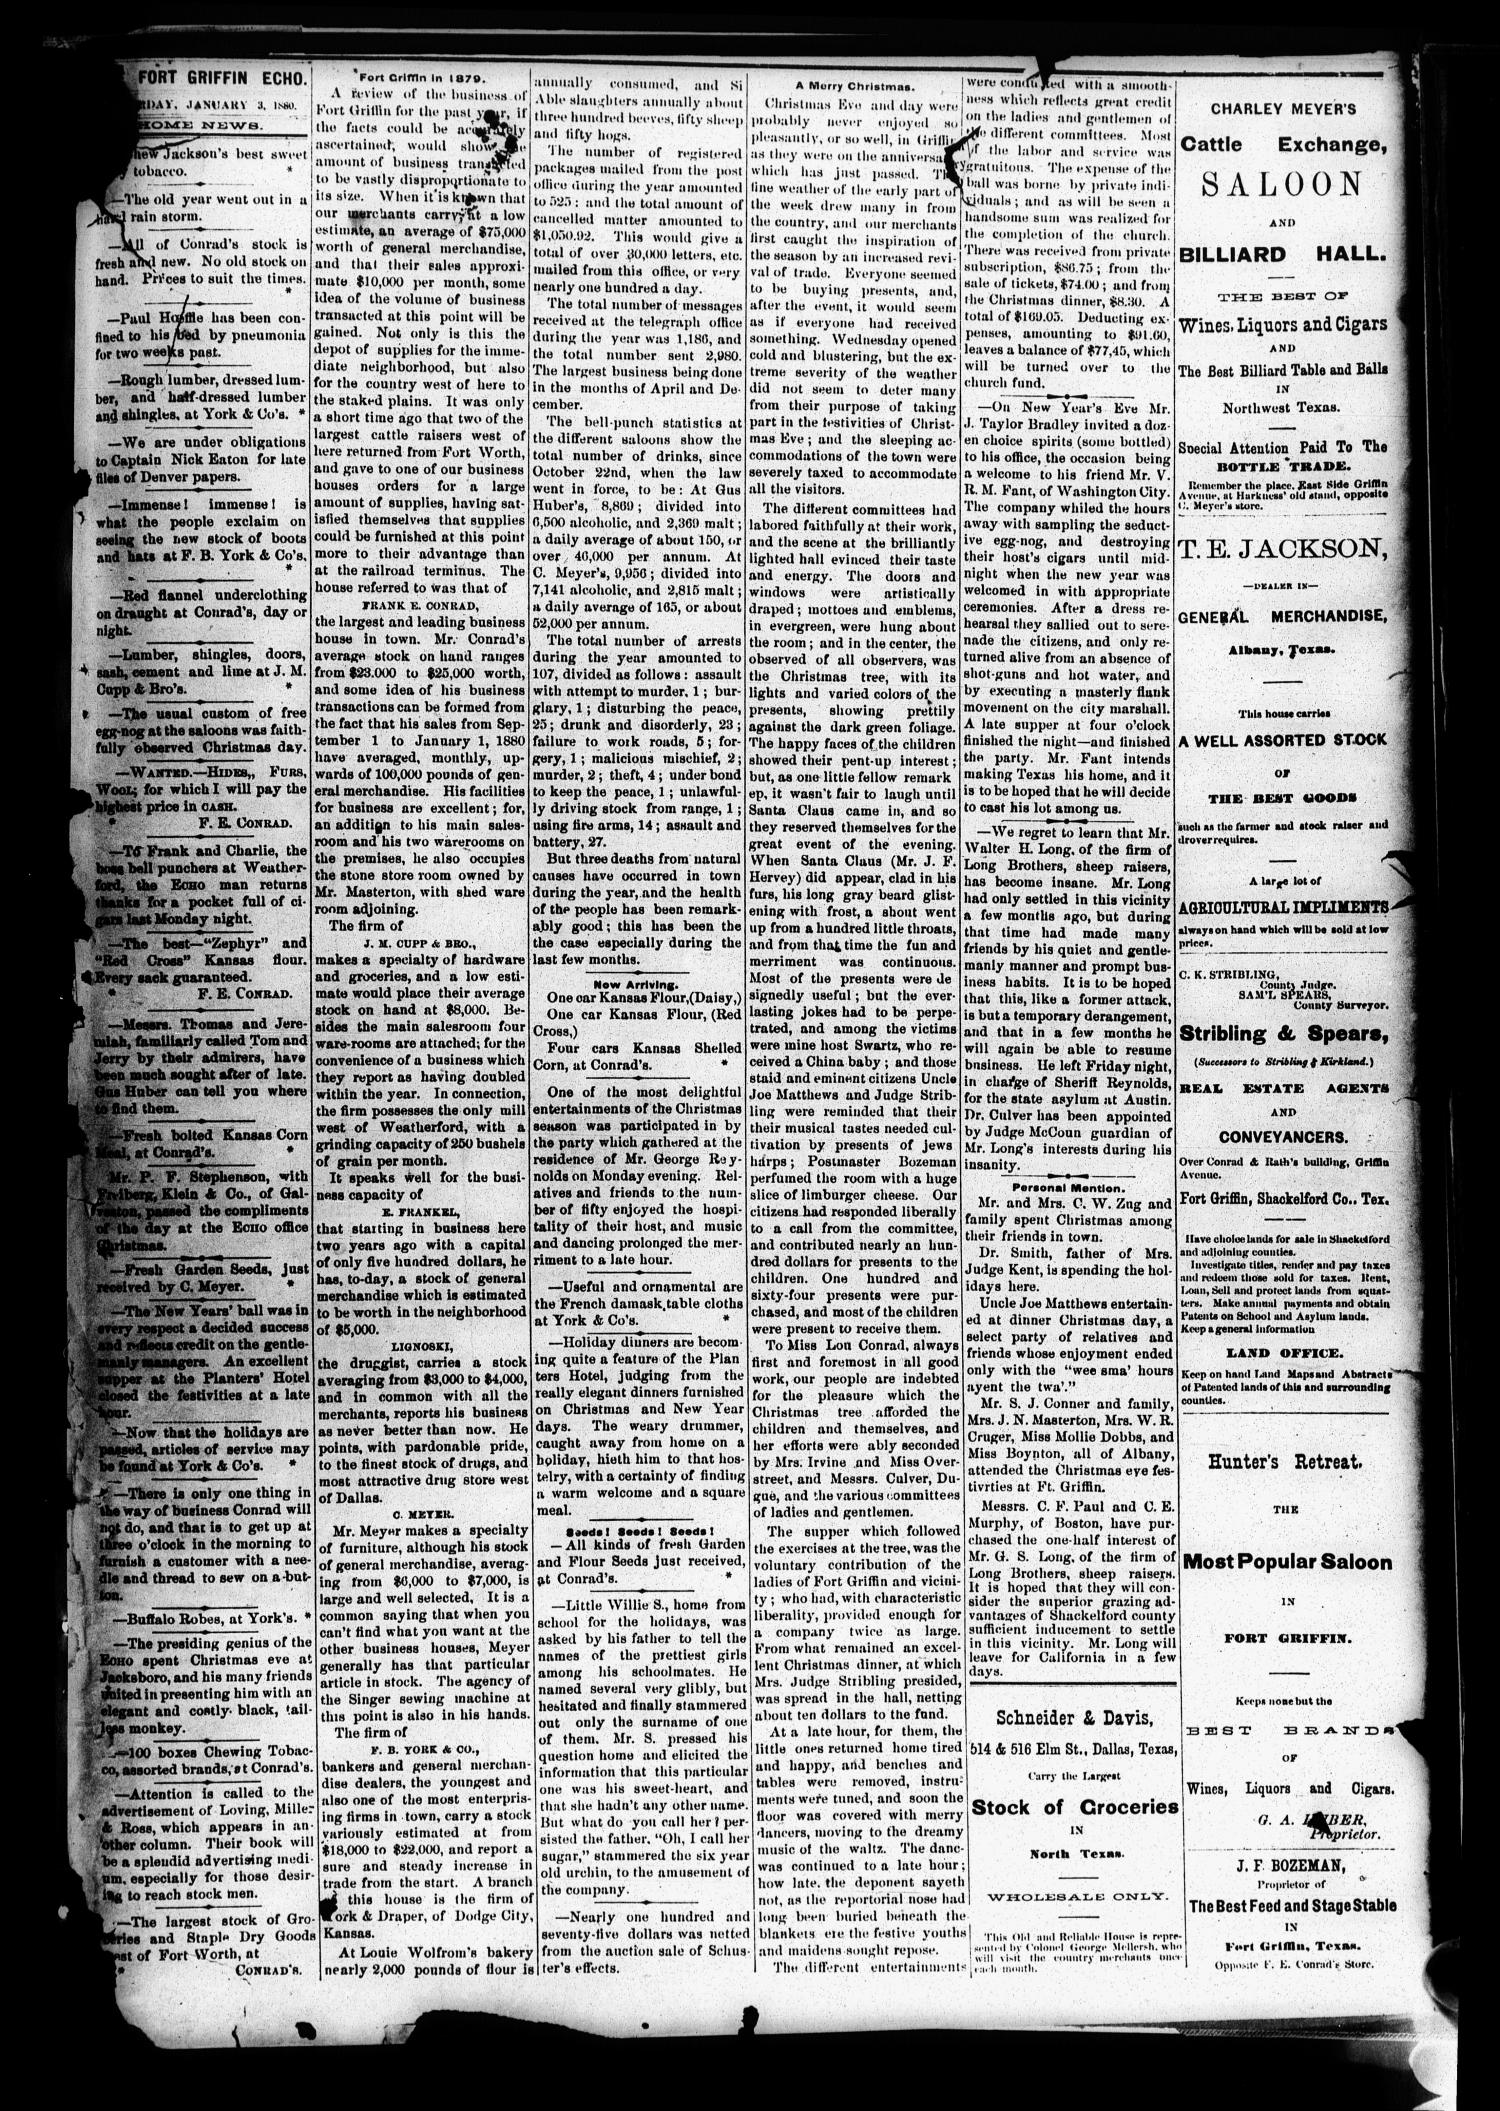 Fort Griffin Echo (Fort Griffin, Tex.), Vol. 1, No. 52, Ed. 1 Saturday, January 3, 1880                                                                                                      [Sequence #]: 1 of 2